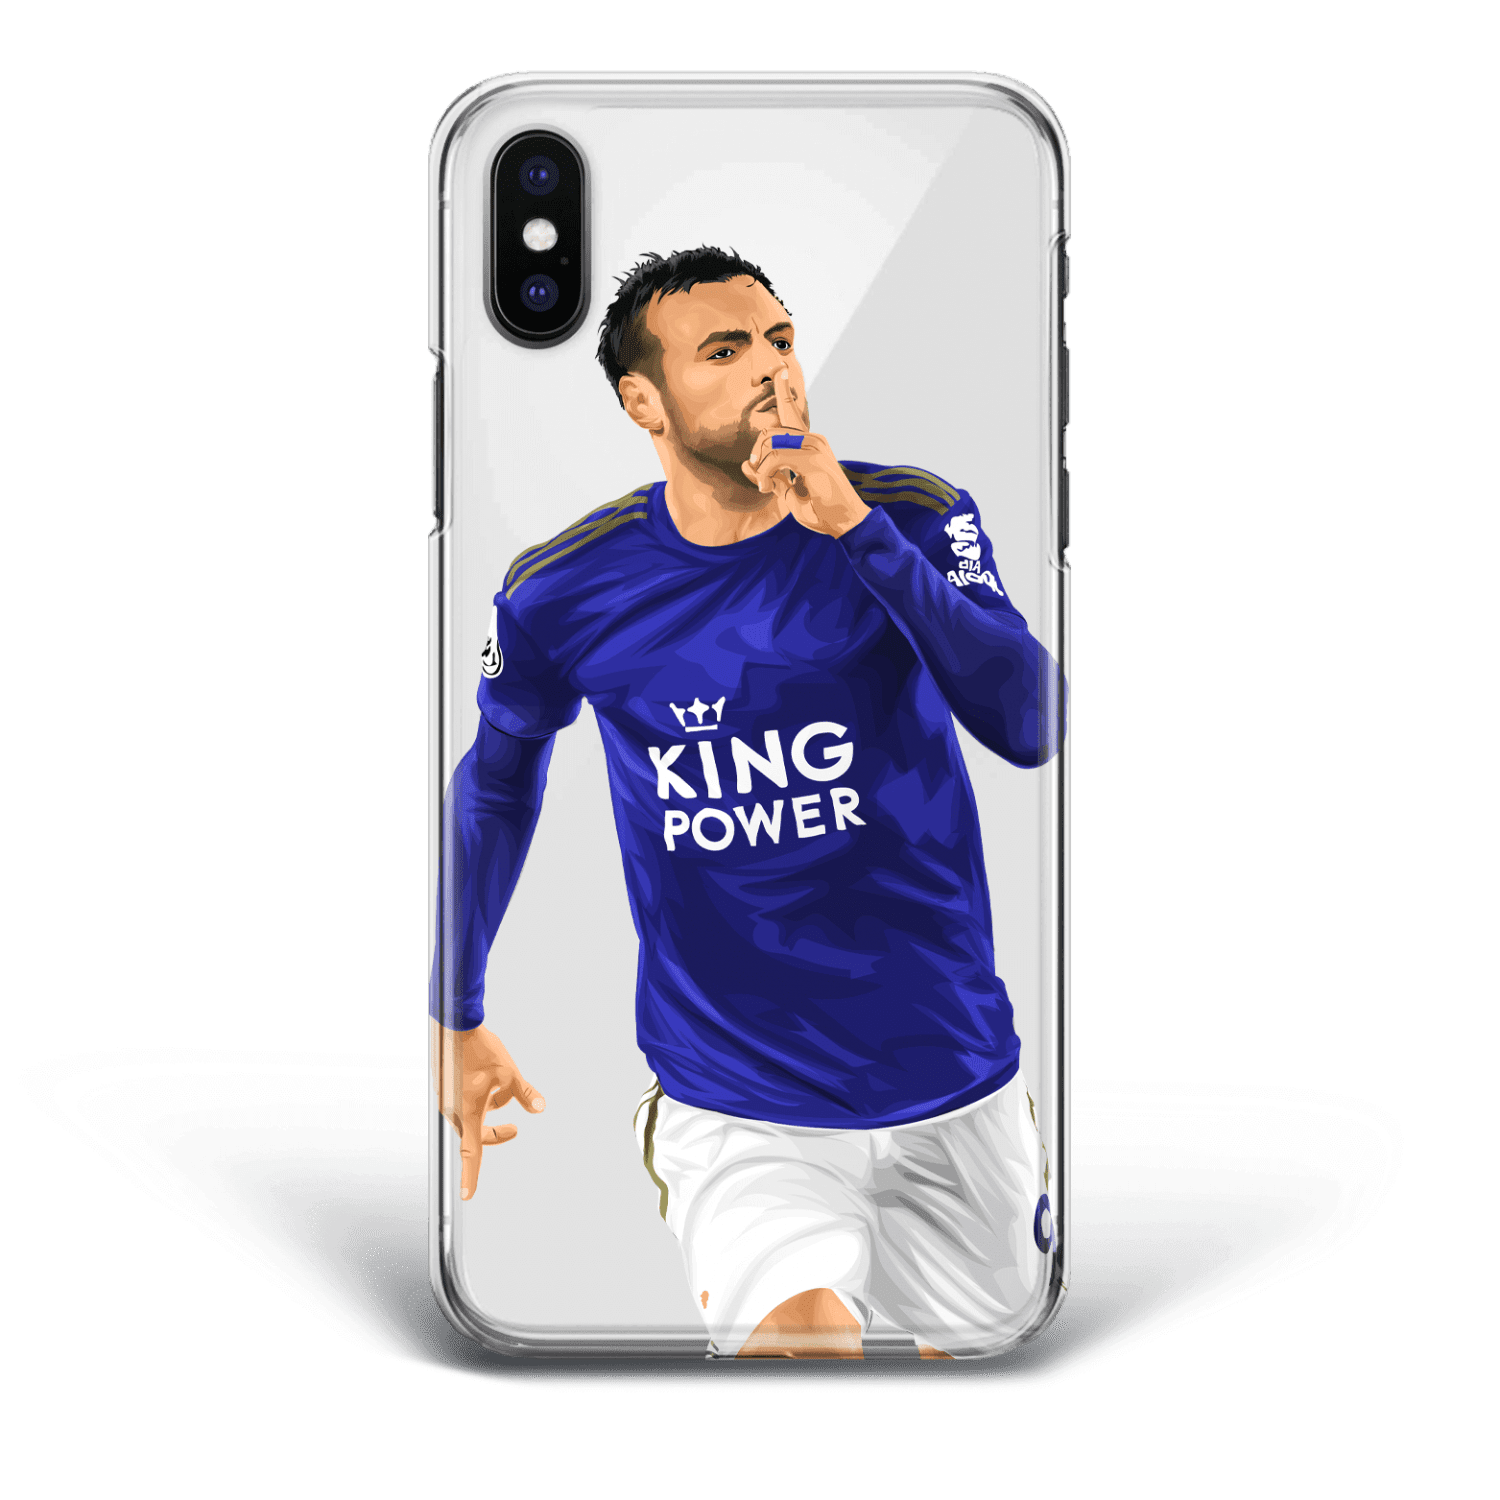 Jamie Vardy Hattrick vs southampton 0:9 away phone case